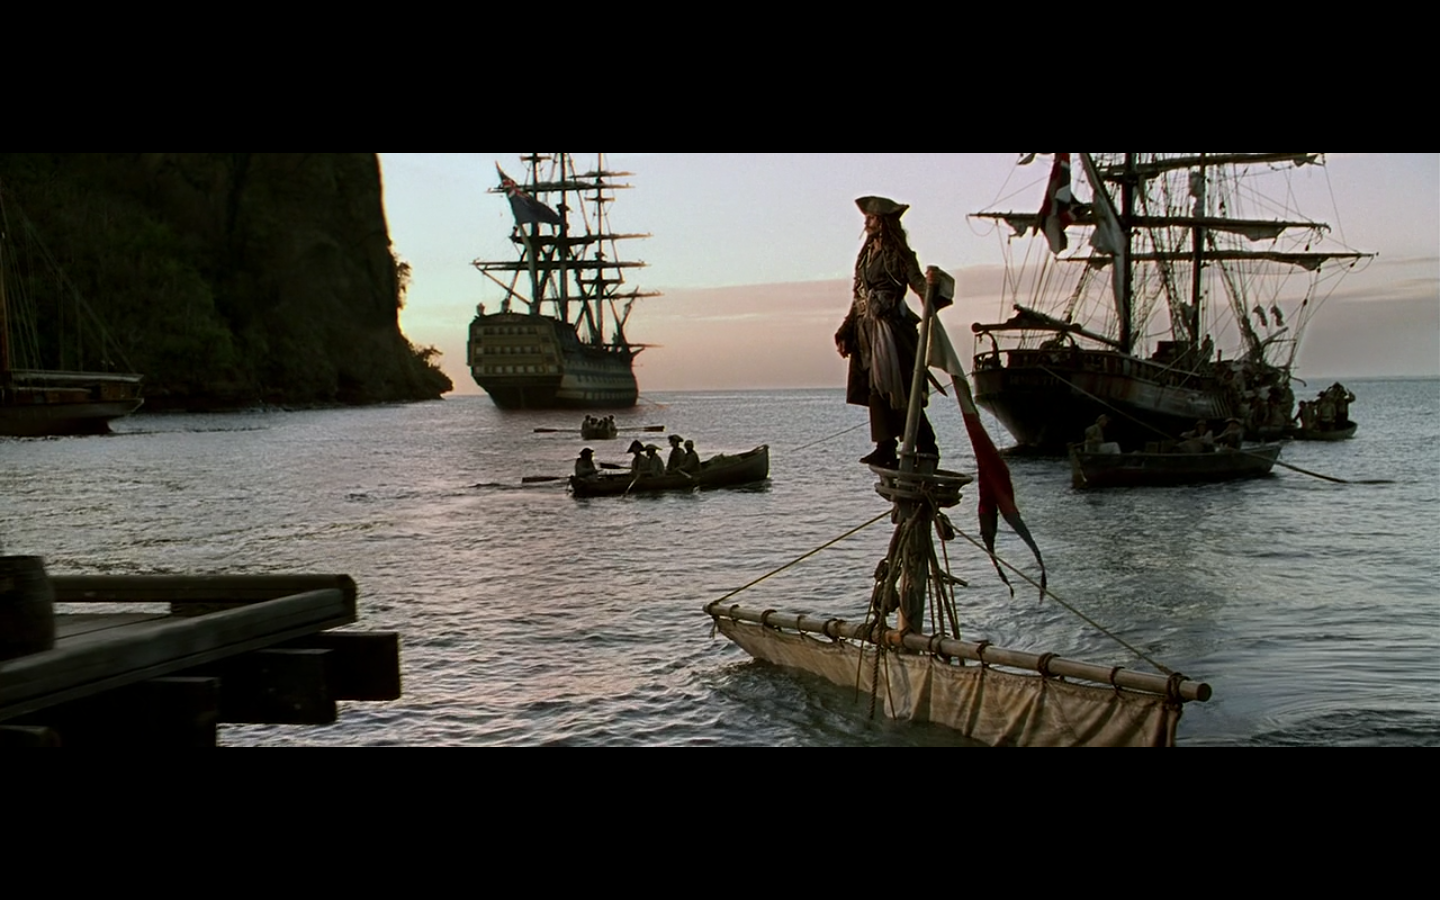 pirates-of-the-caribbean-the-curse-of-the-black-pearl-194.png